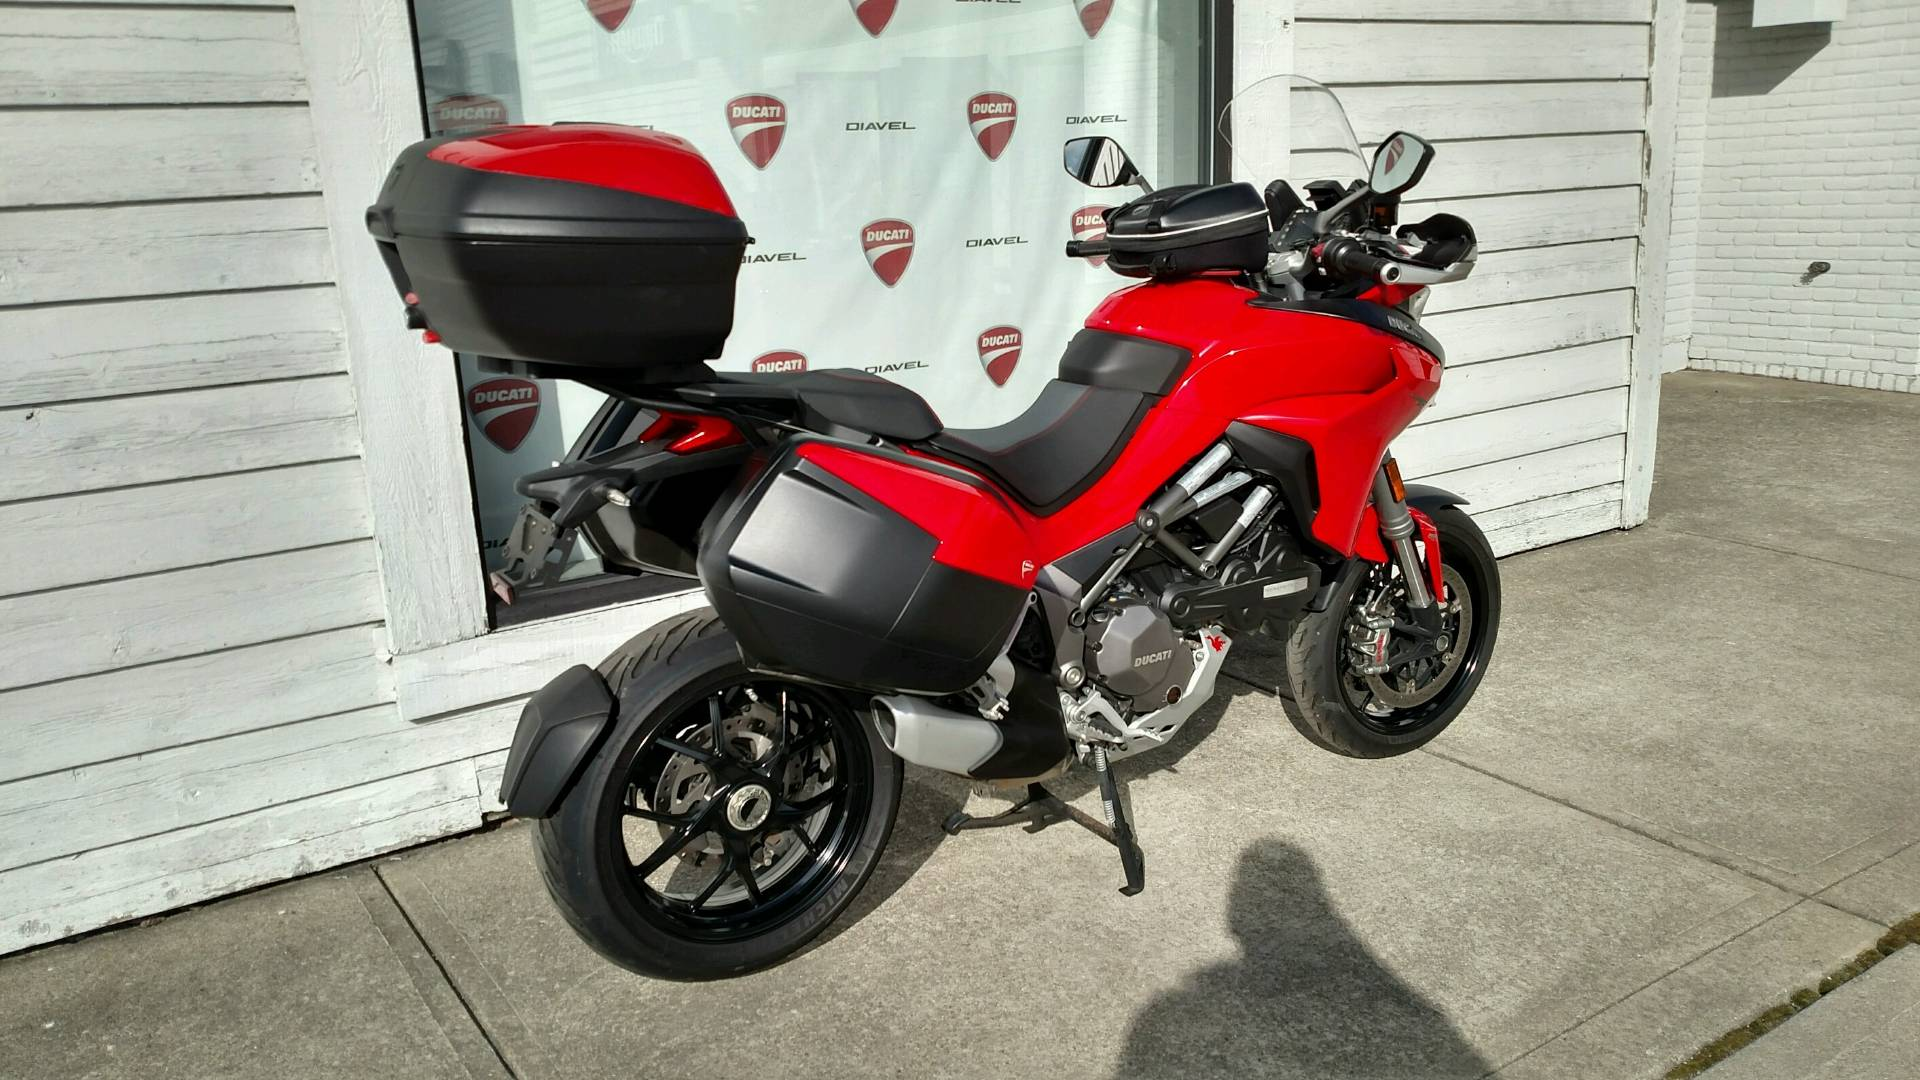 2018 Ducati Multistrada 1260 S Touring in Columbus, Ohio - Photo 4